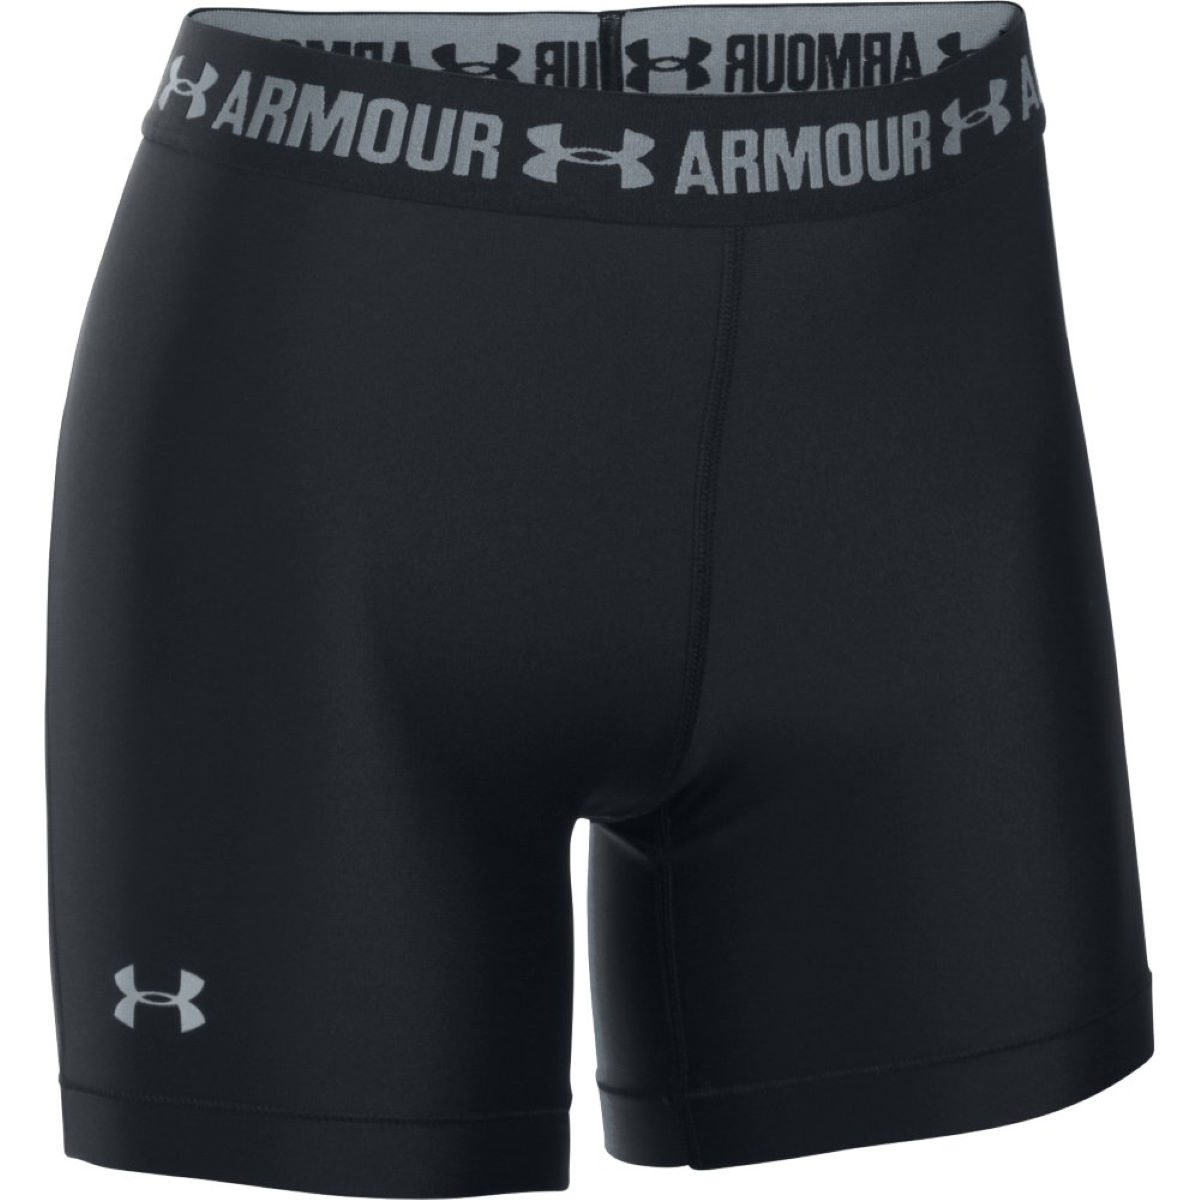 Short Femme Under Armour HG Armour Middy Gym - XS Noir